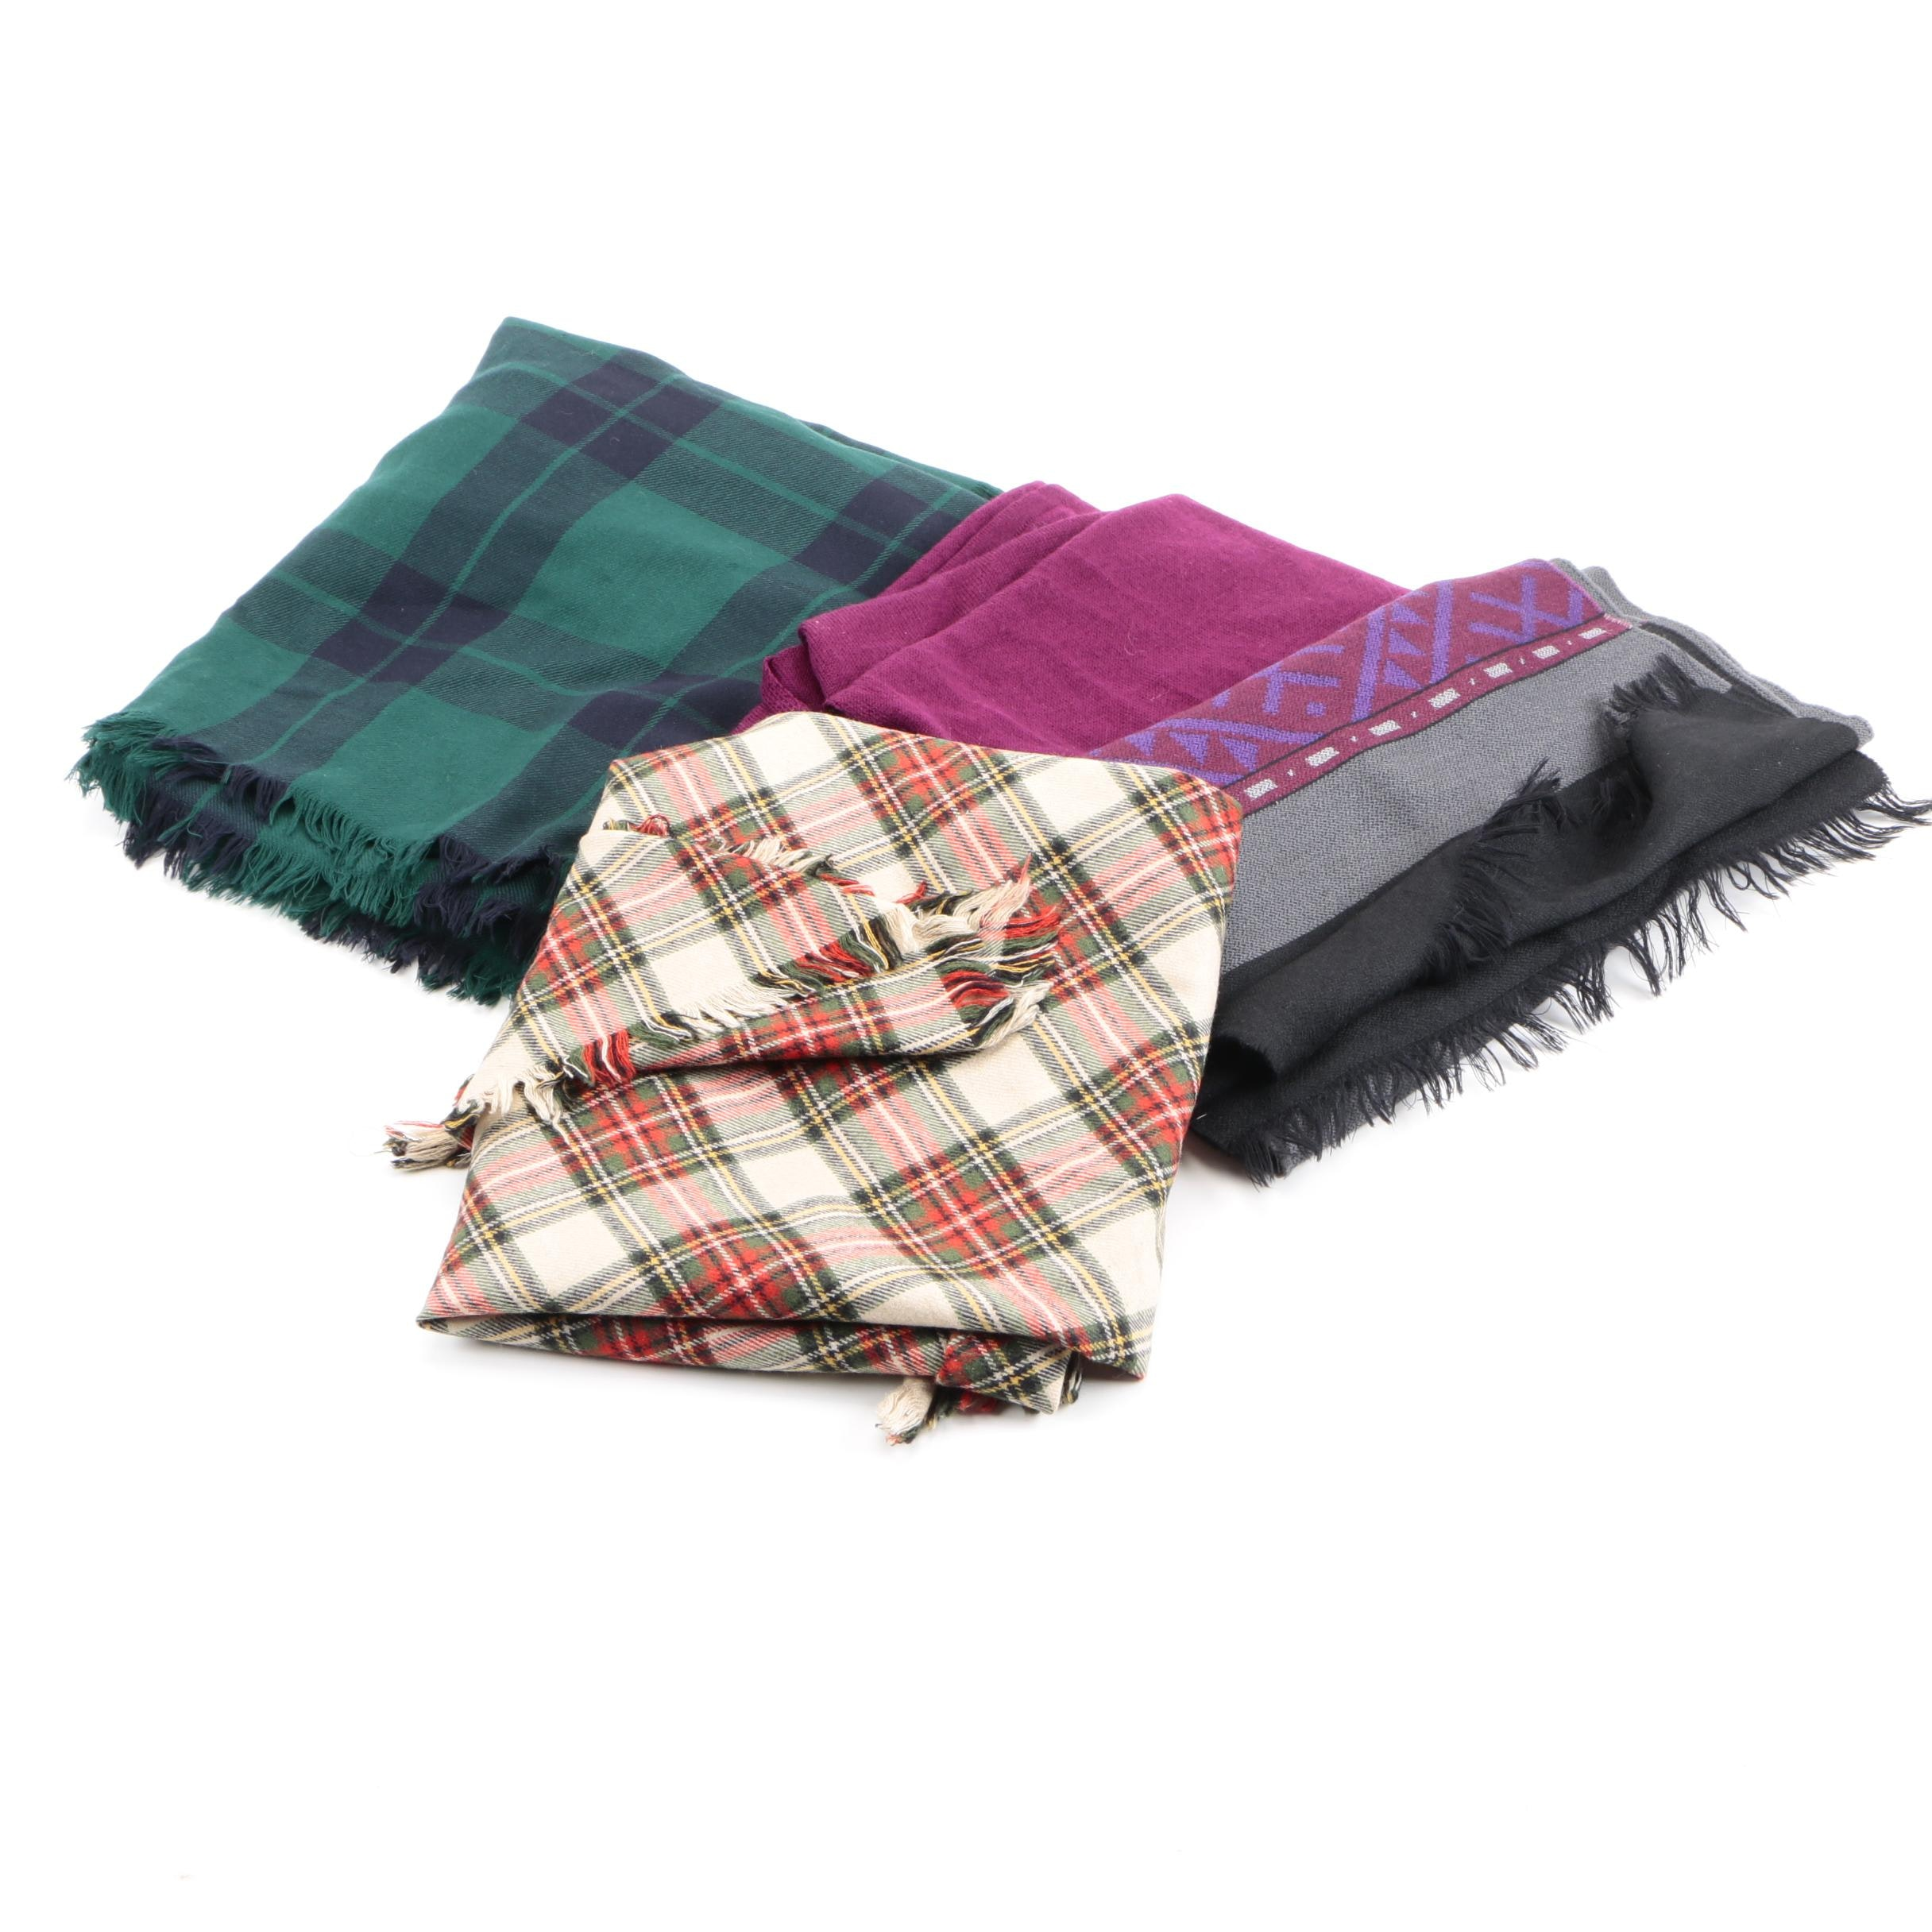 Woolen Scarves Including Marshall Field's